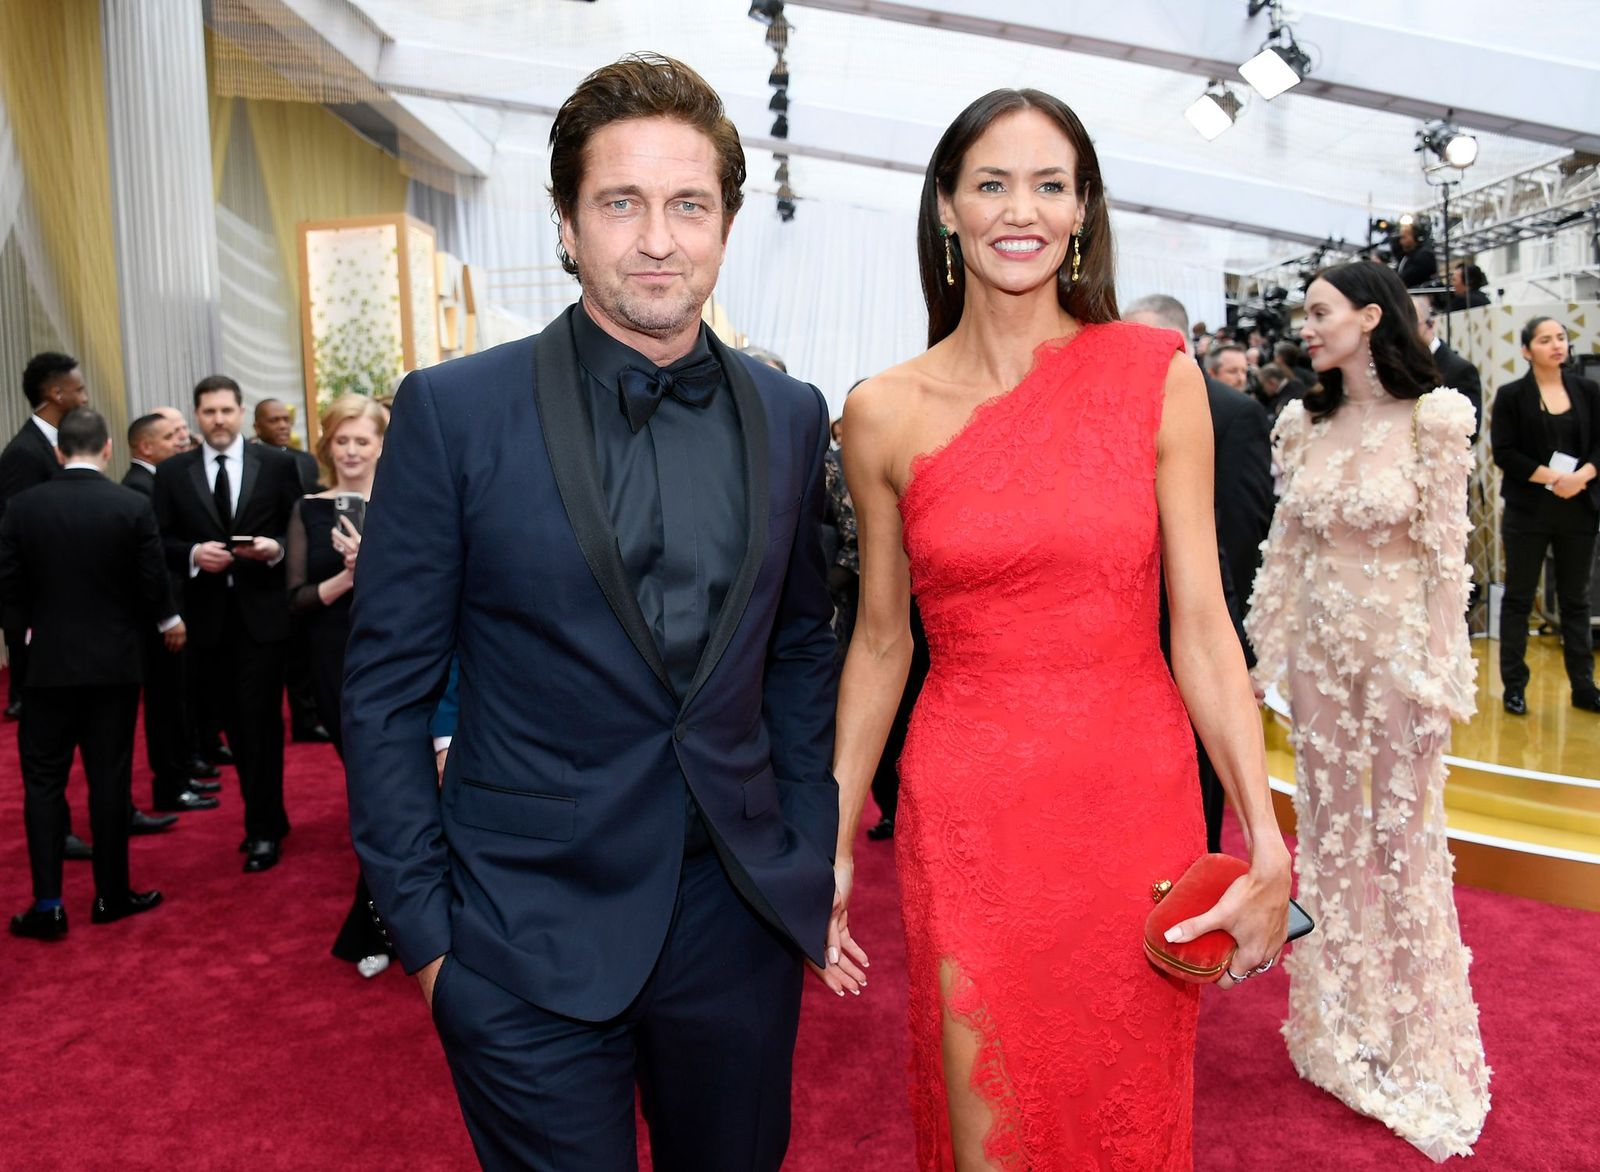 Gerard Butler and Morgan Brown attends the 92nd Annual Academy Awards at Hollywood and Highland on February 09, 2020 in Hollywood, California. (Photo by Kevork Djansezian/Getty Images)